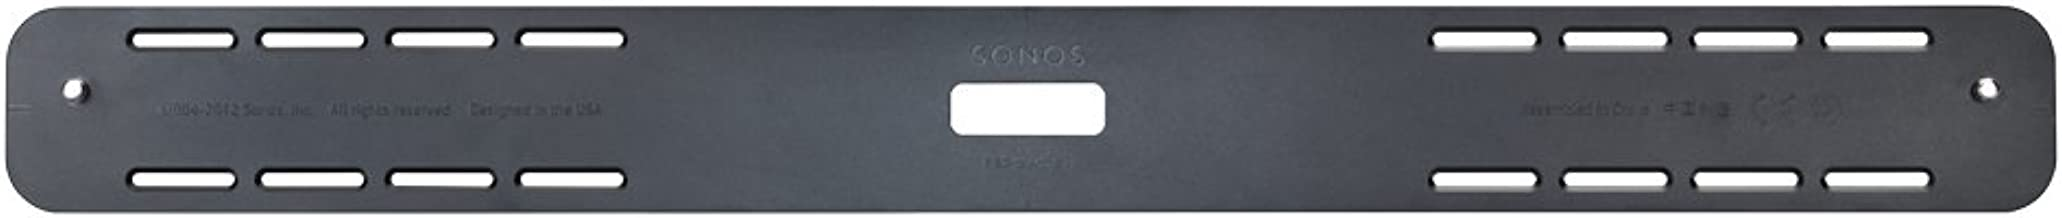 Sonos PLAYBAR Wall Mount Kit, Black